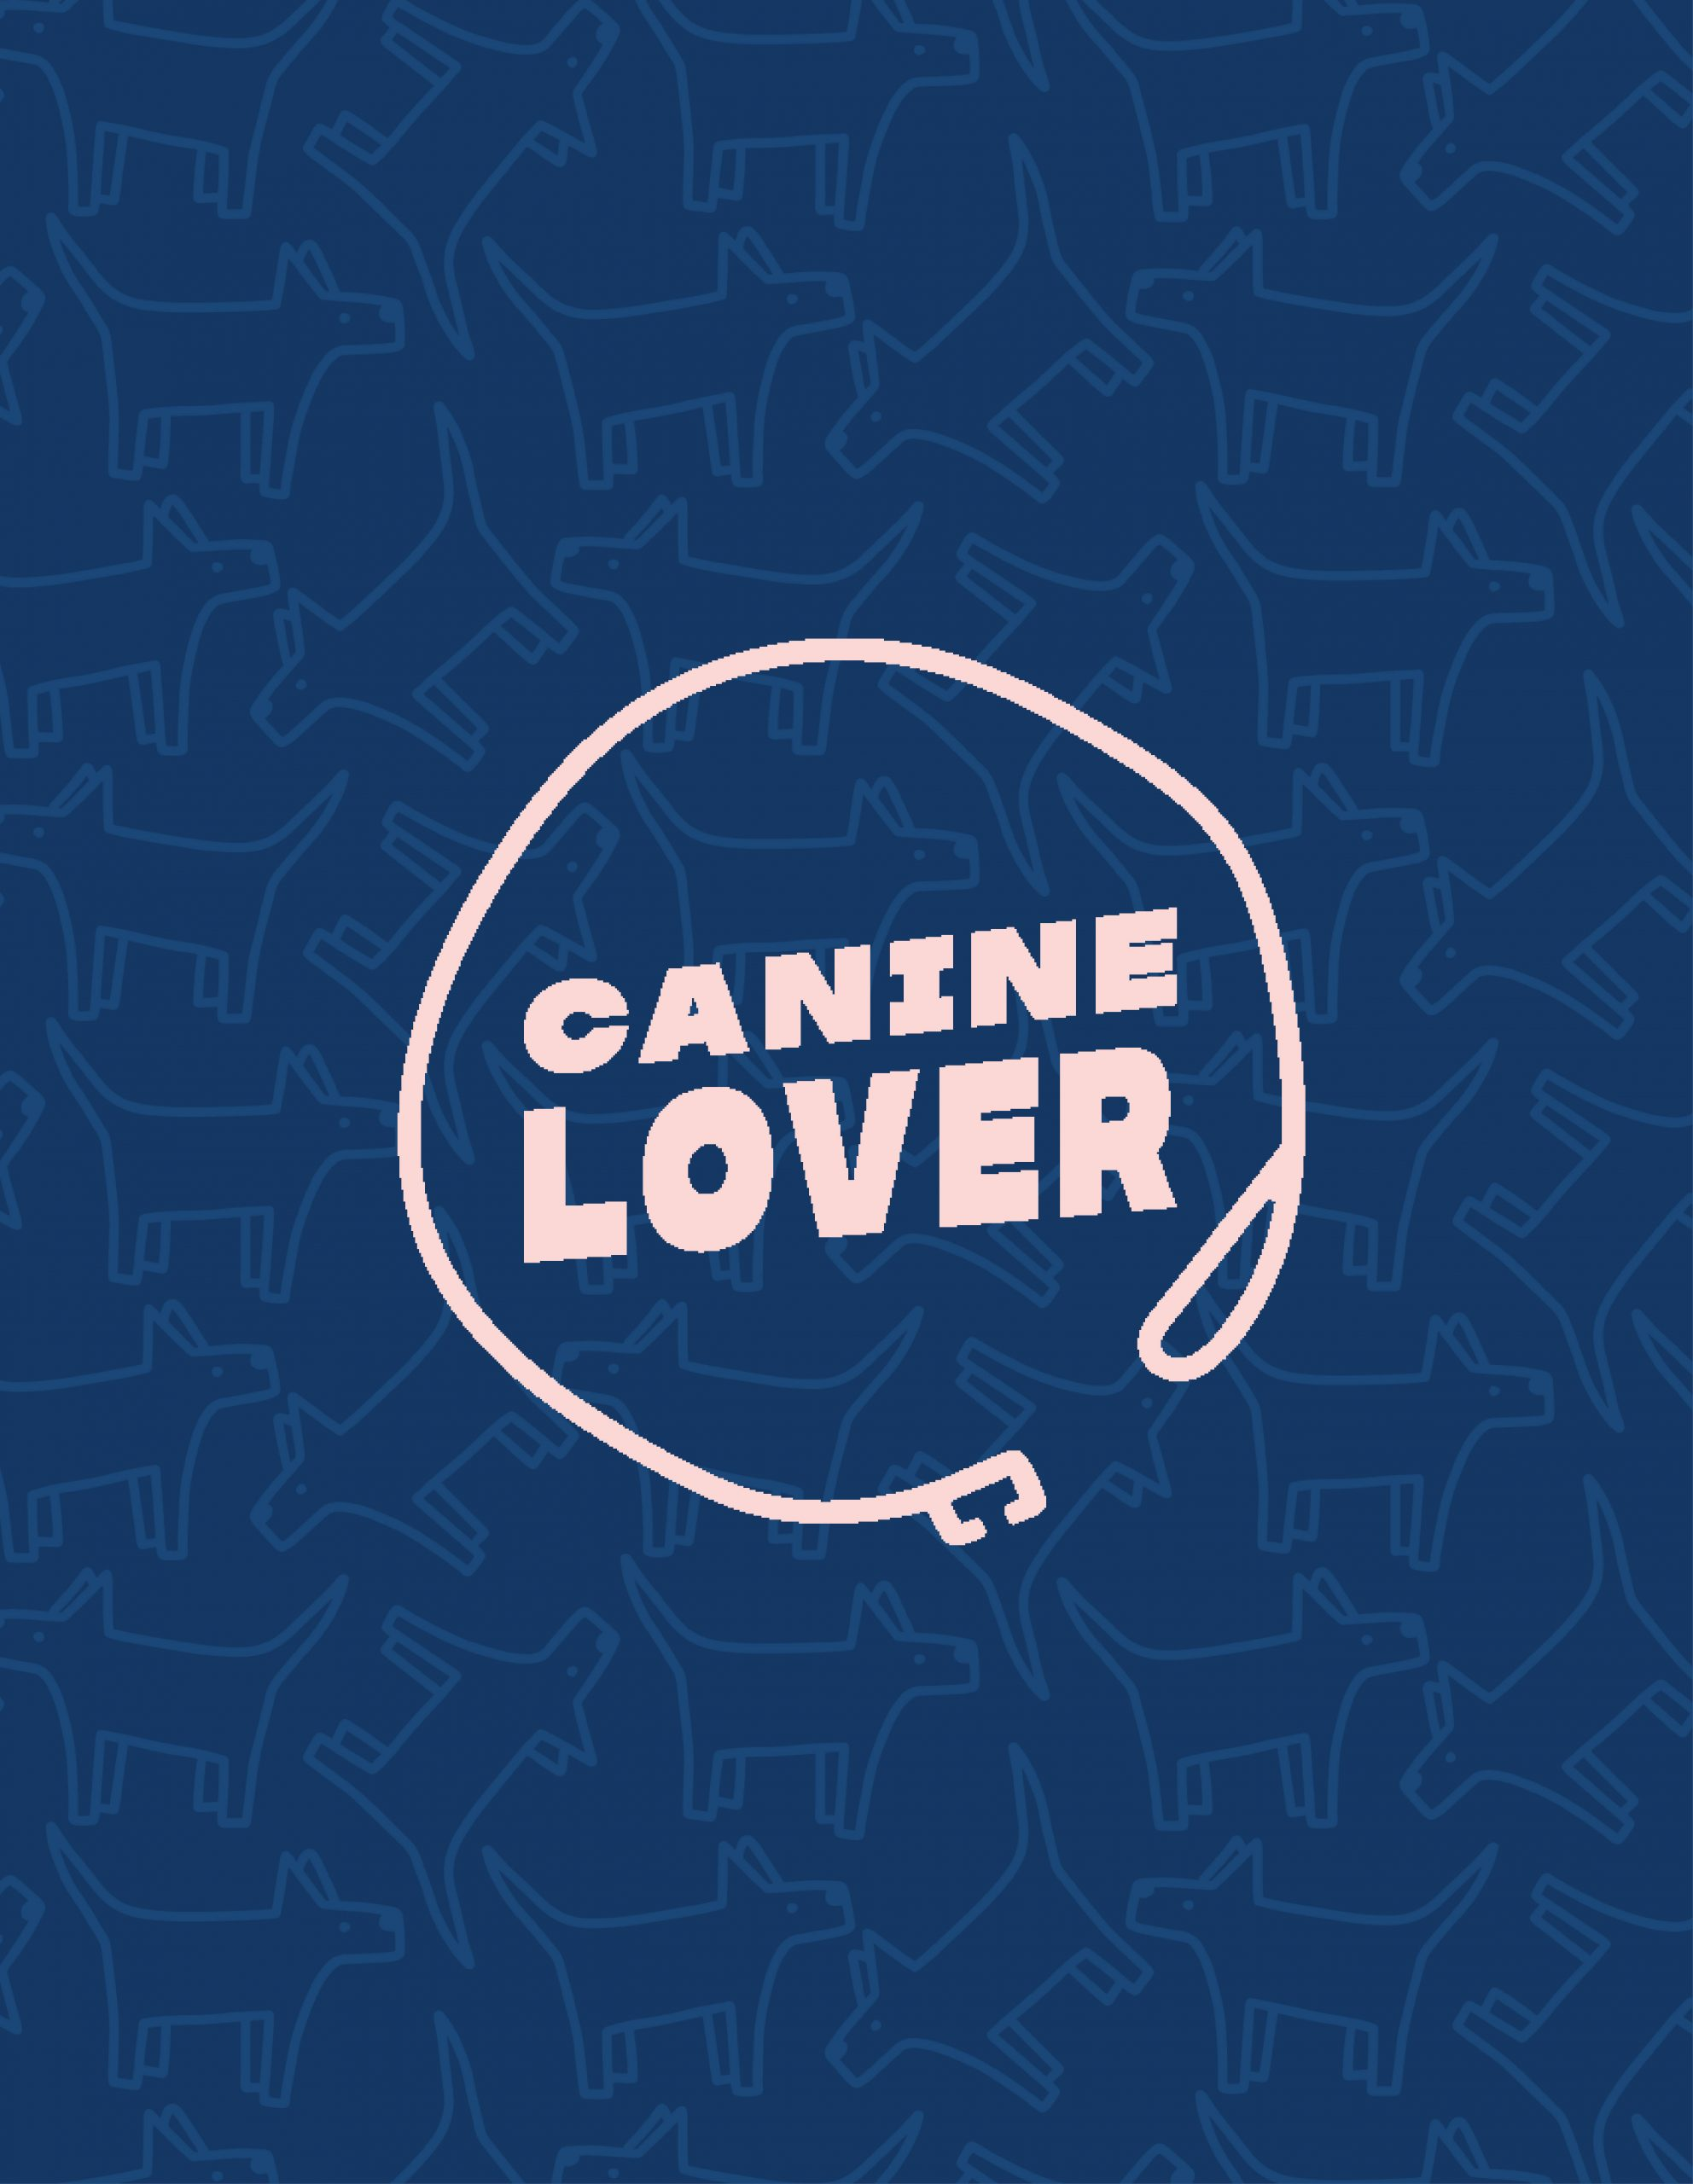 Canine Lover